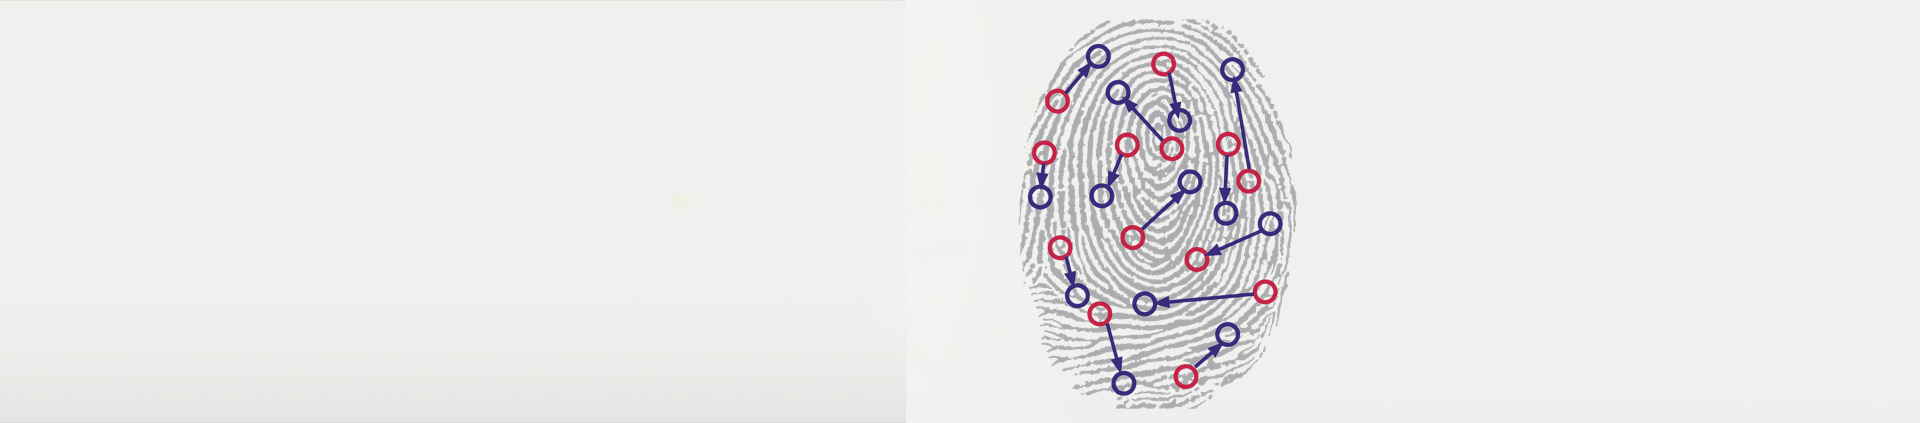 biometric-fingerprint.png